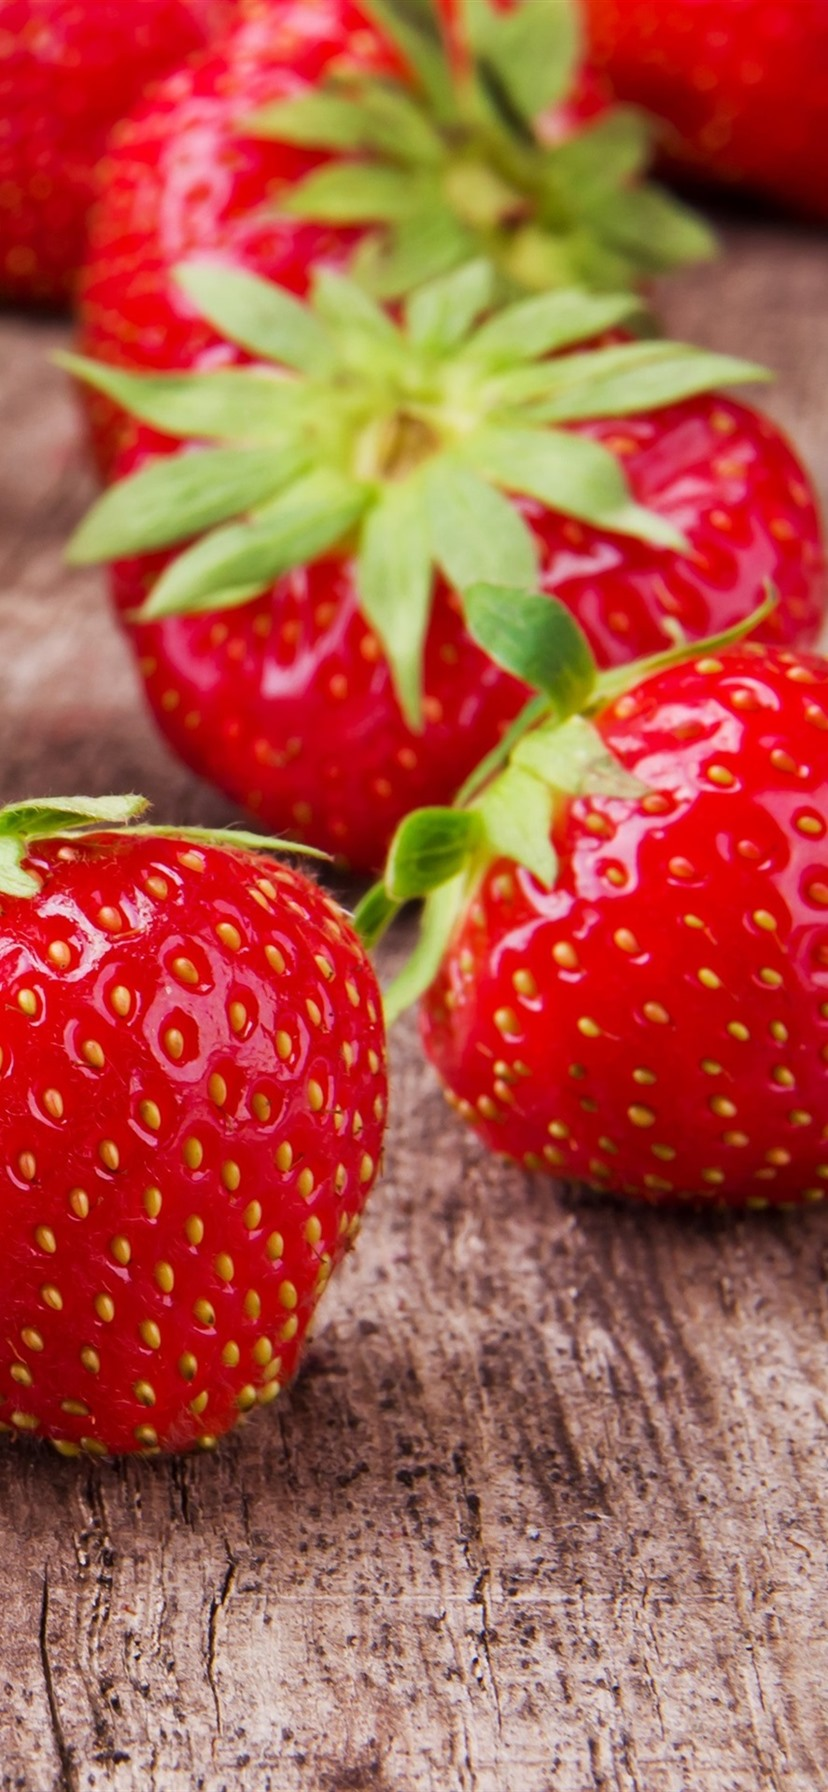 Wallpaper Fresh Strawberry Wooden Board 3840x2160 Uhd 4k